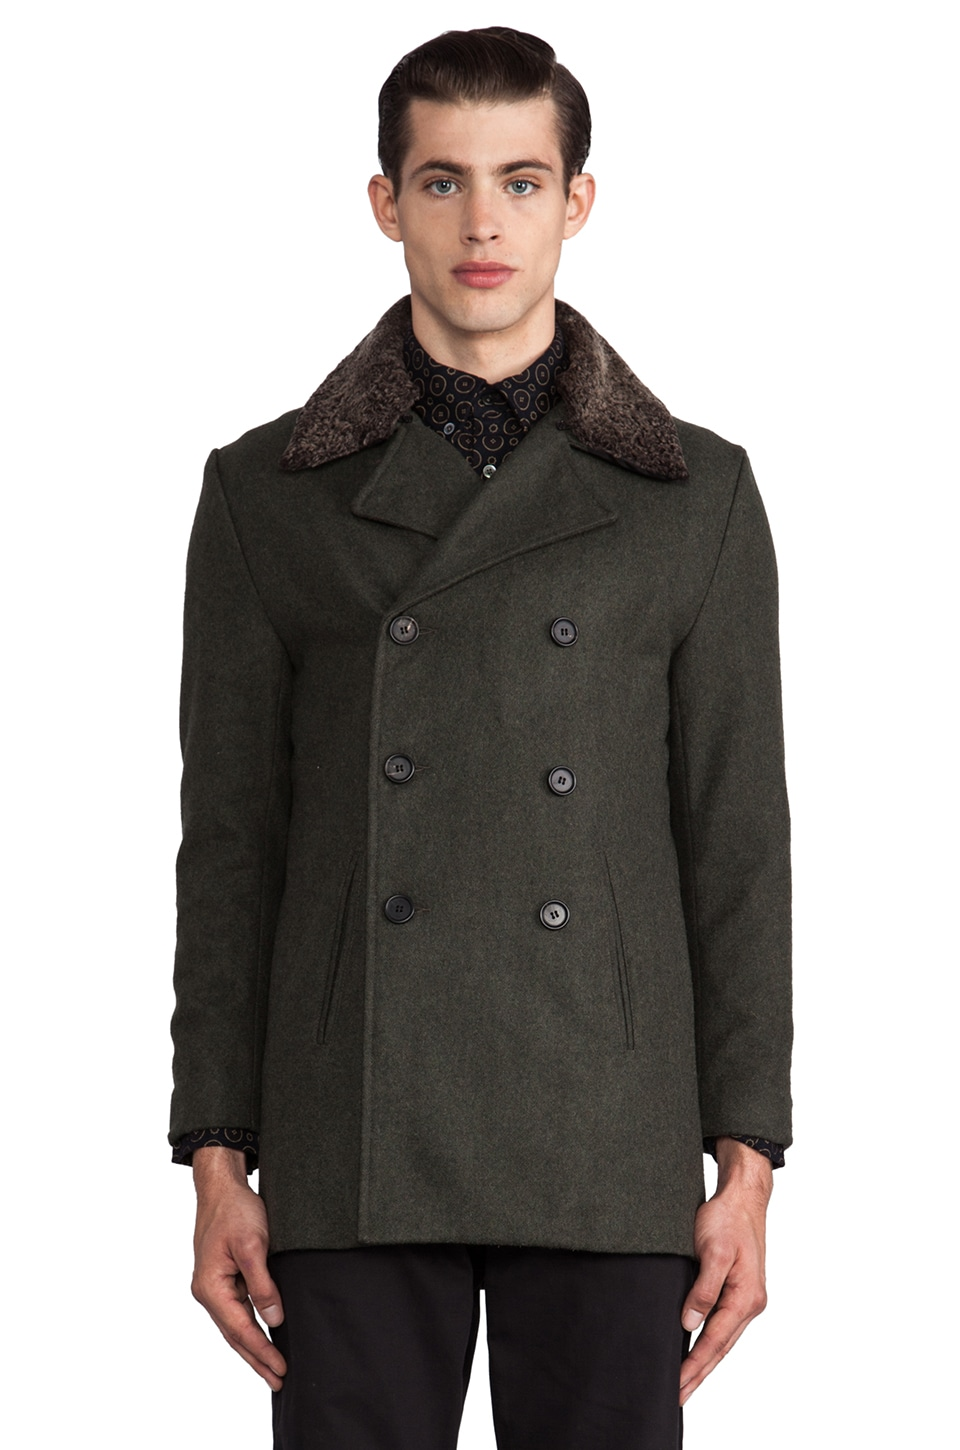 TIMO WEILAND Jeff Peacoat w/ Sherling Collar in Forest Green